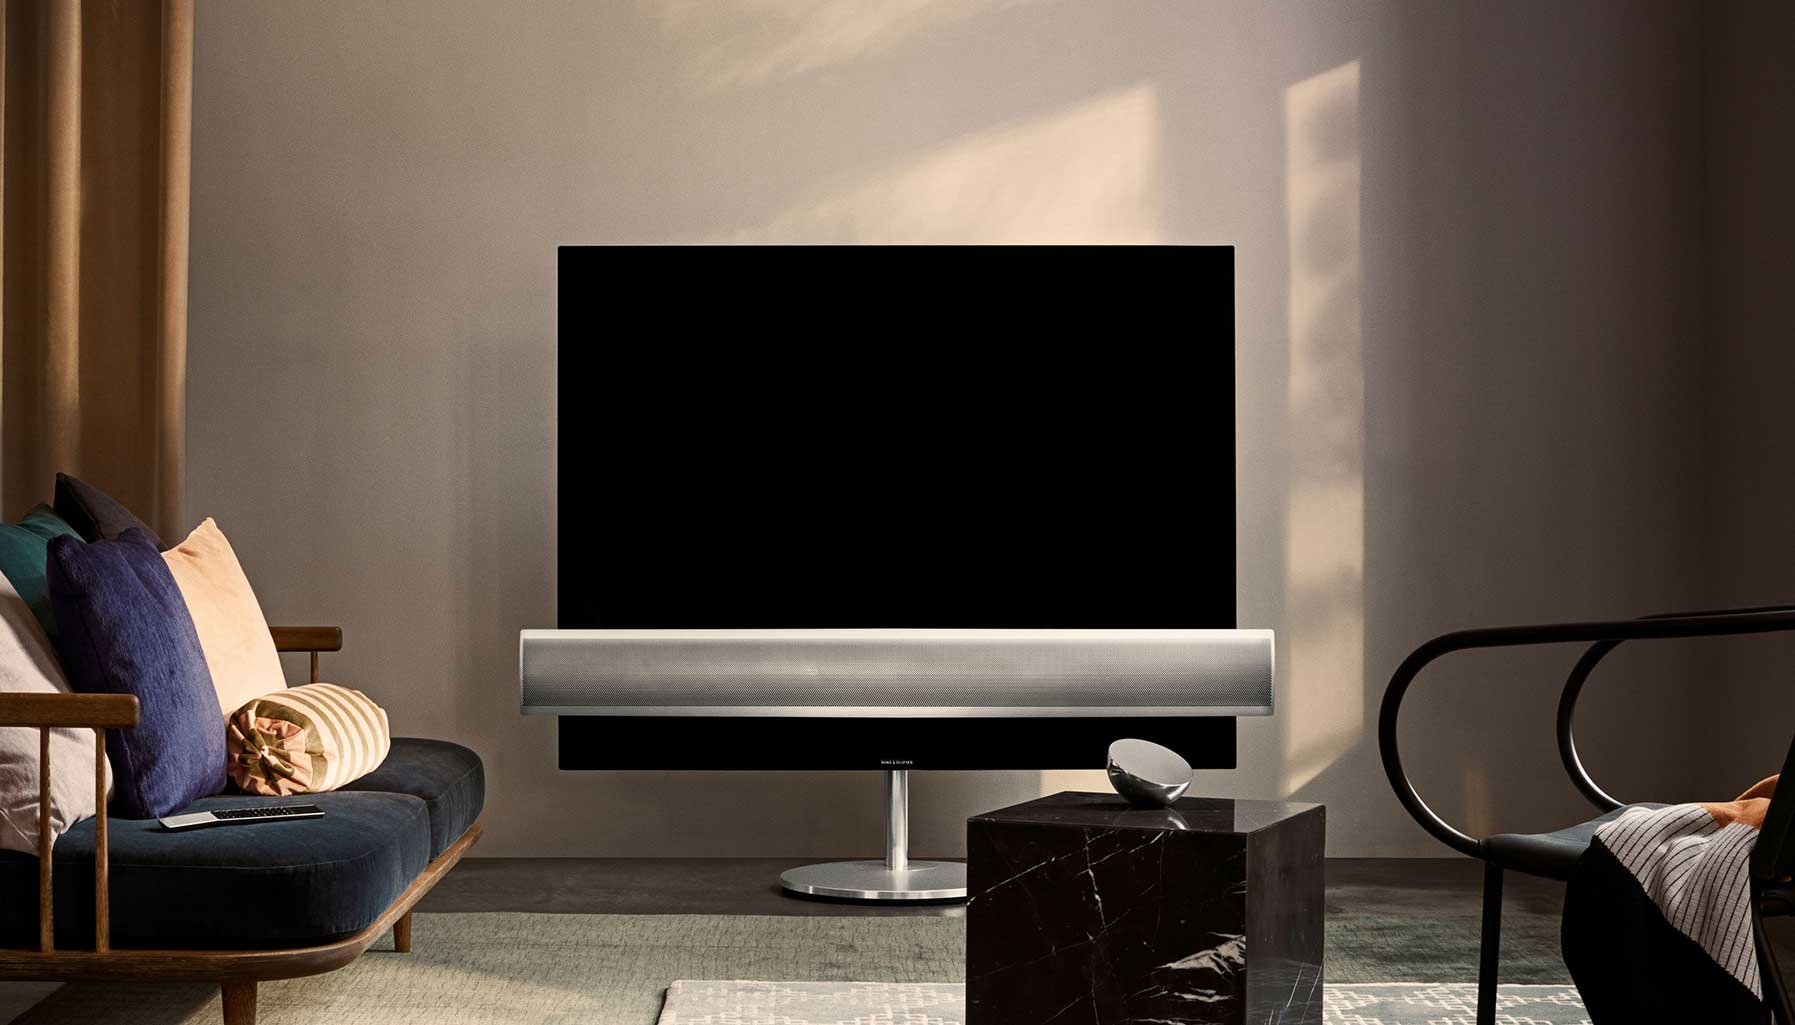 Bang & Olufsen 4K Ultra-HD Beovision Exlipse